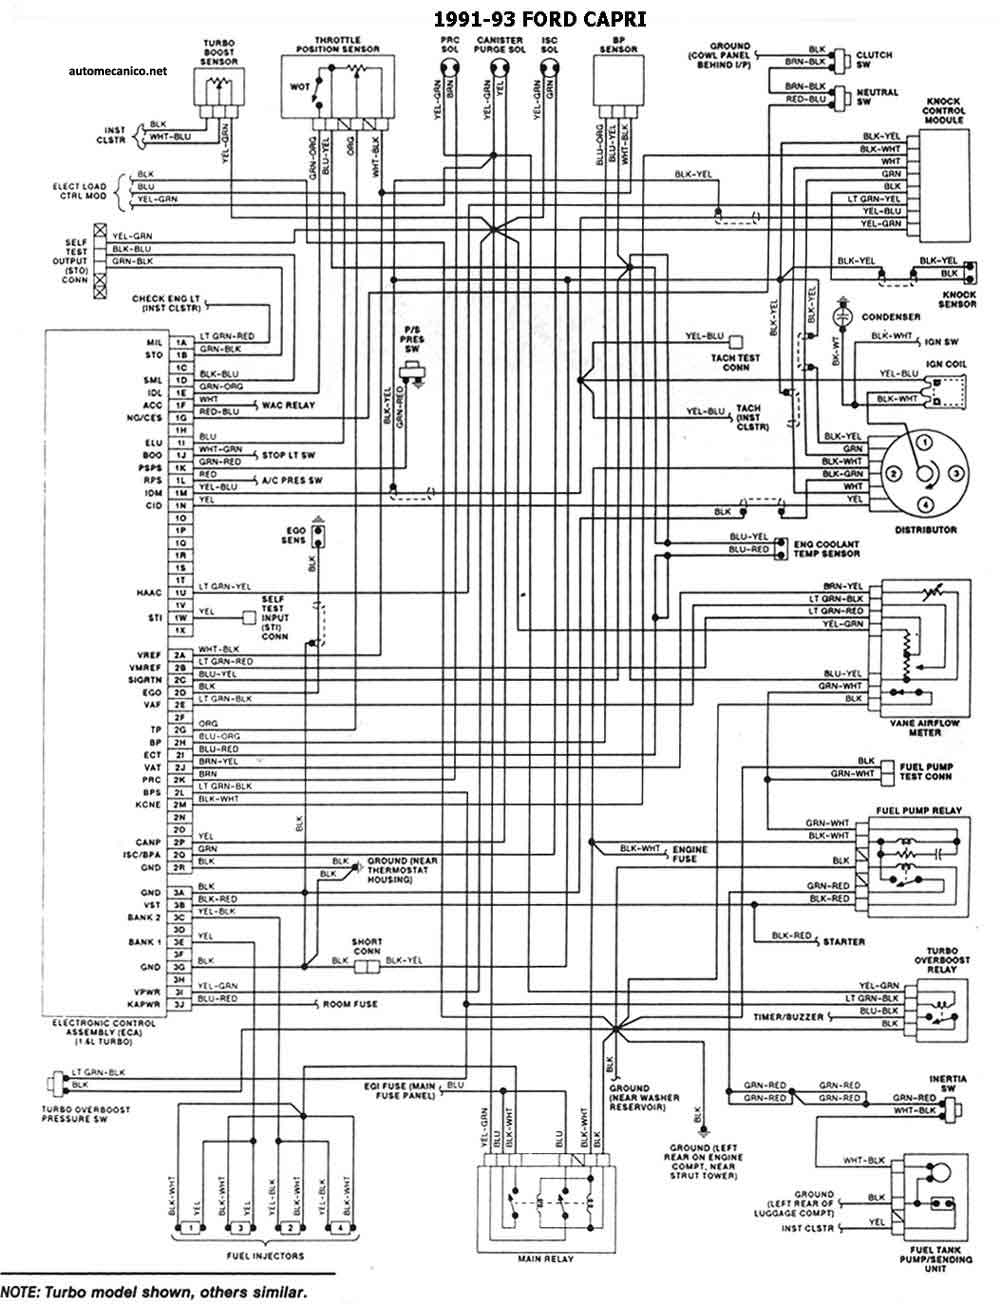 esqfrd002 Nissan Z Wiring Diagram Pdf on relay fuse box, front engine parts, manual transmission parts, headlight wiring, cooling fan wiring, driver door handle, wiring harness,